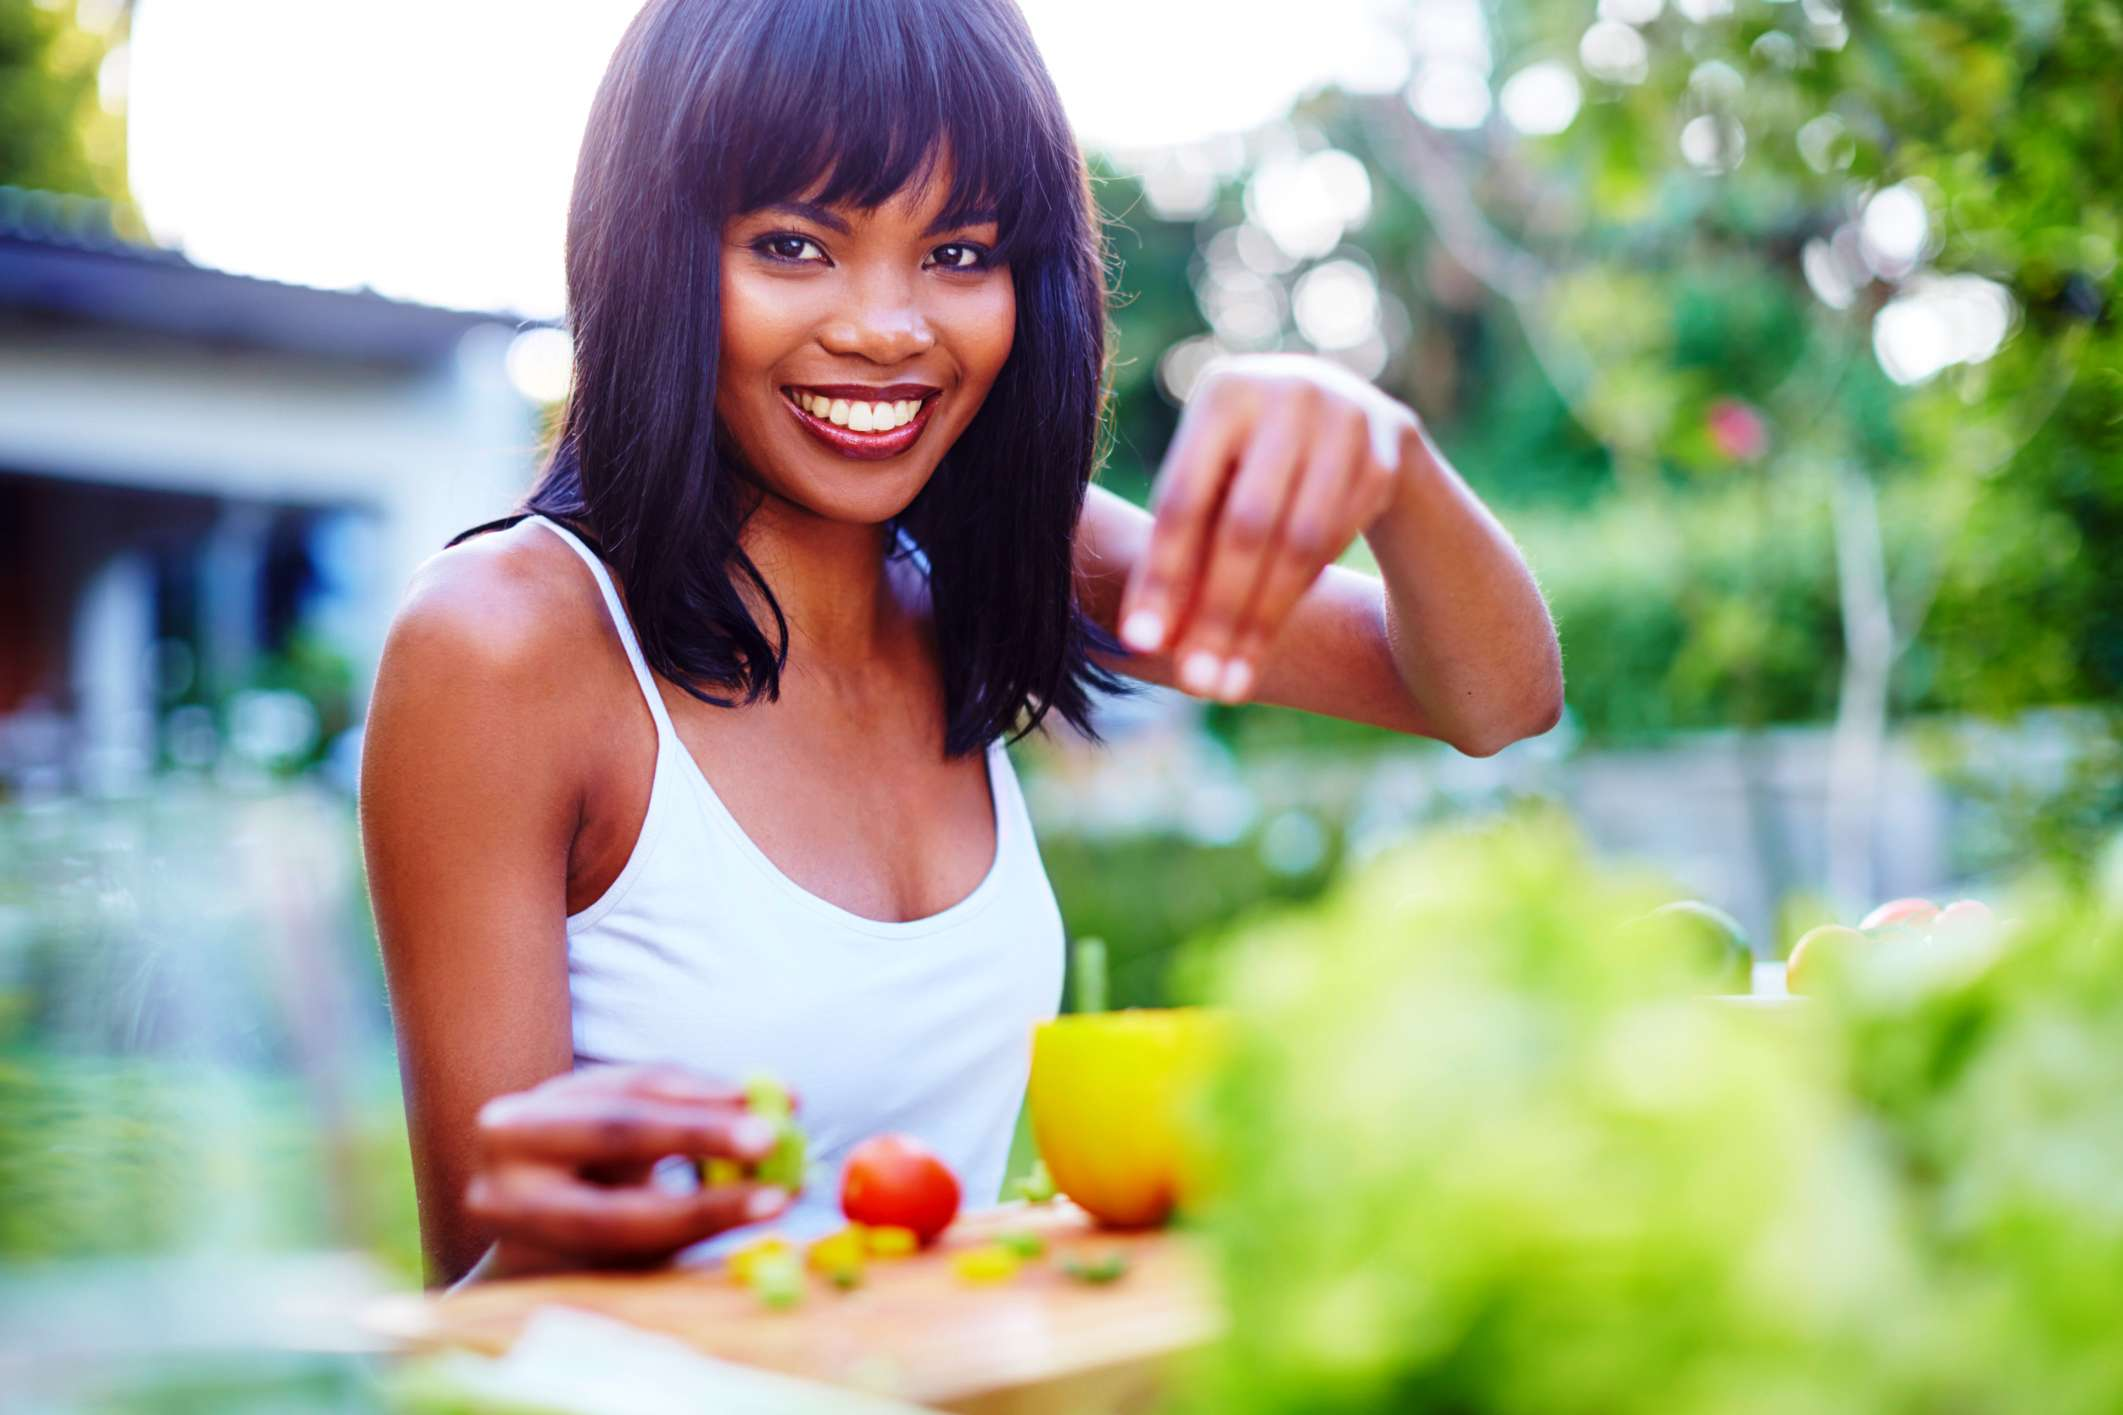 Smiling woman eating fresh garden vegetables and drinking tea outside